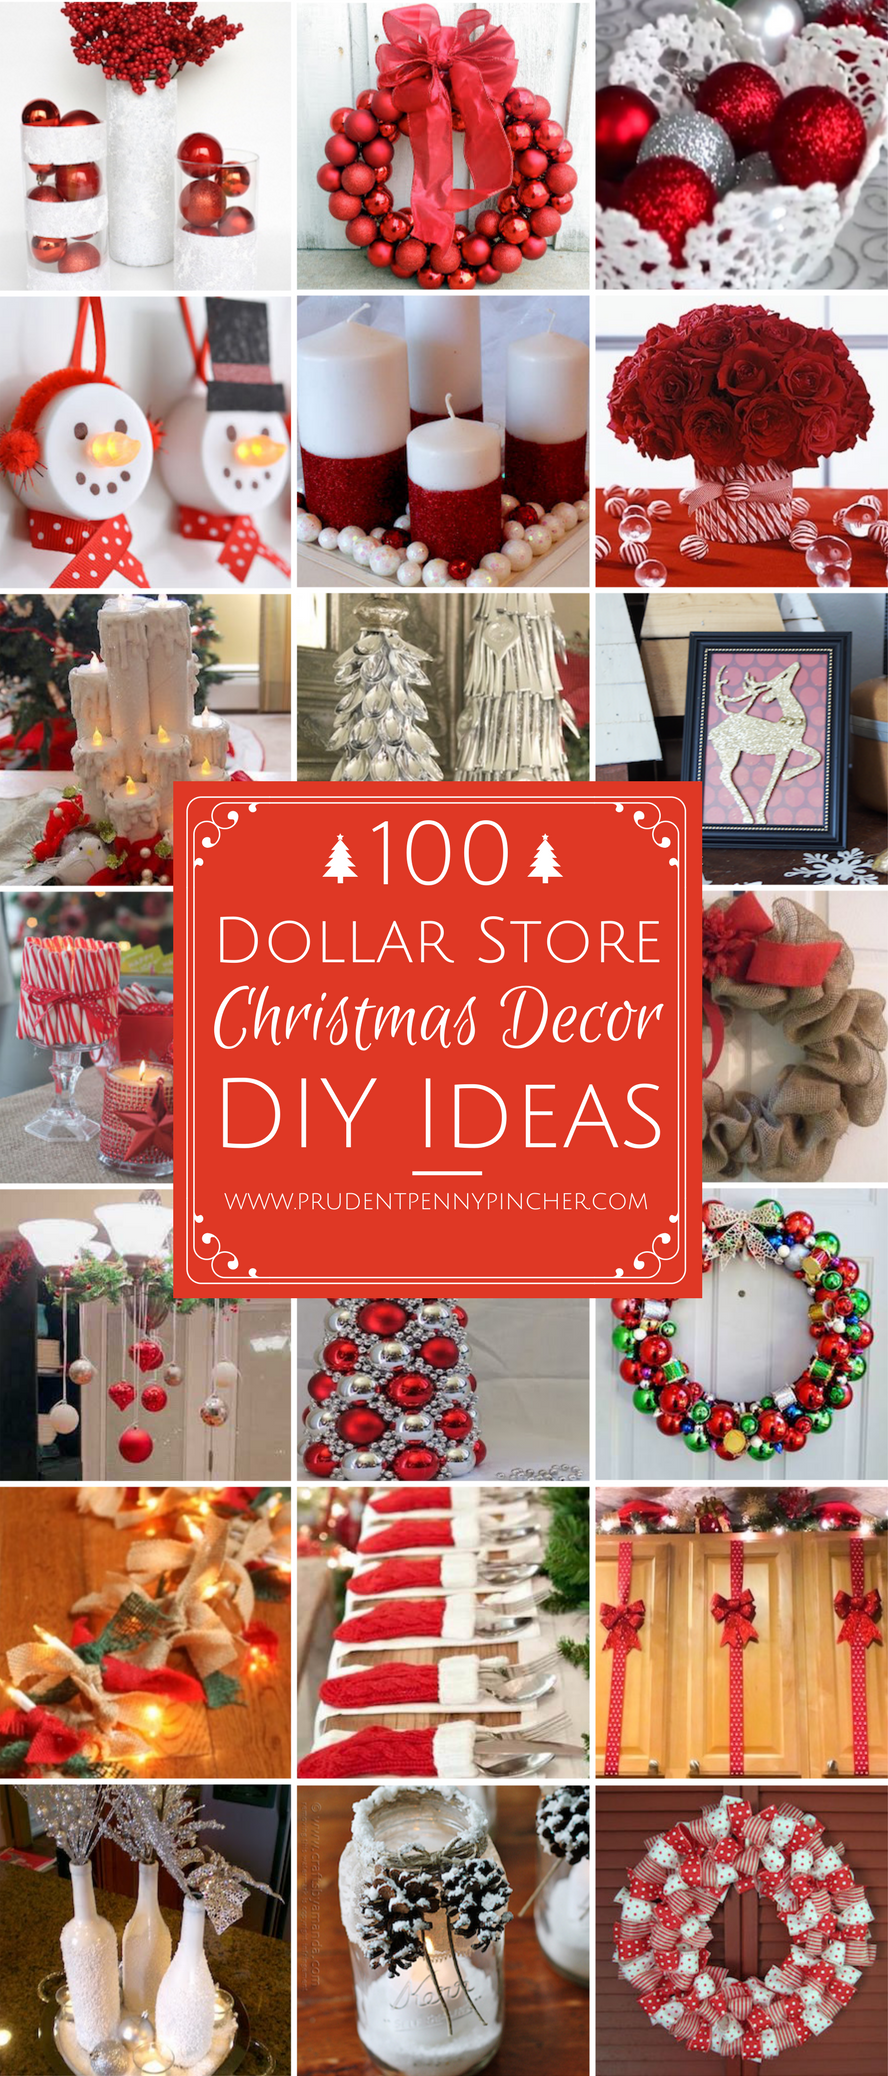 100 dollar store christmas decor diy ideas prudent penny pincher dollar store christmas decor diy ideas solutioingenieria Choice Image